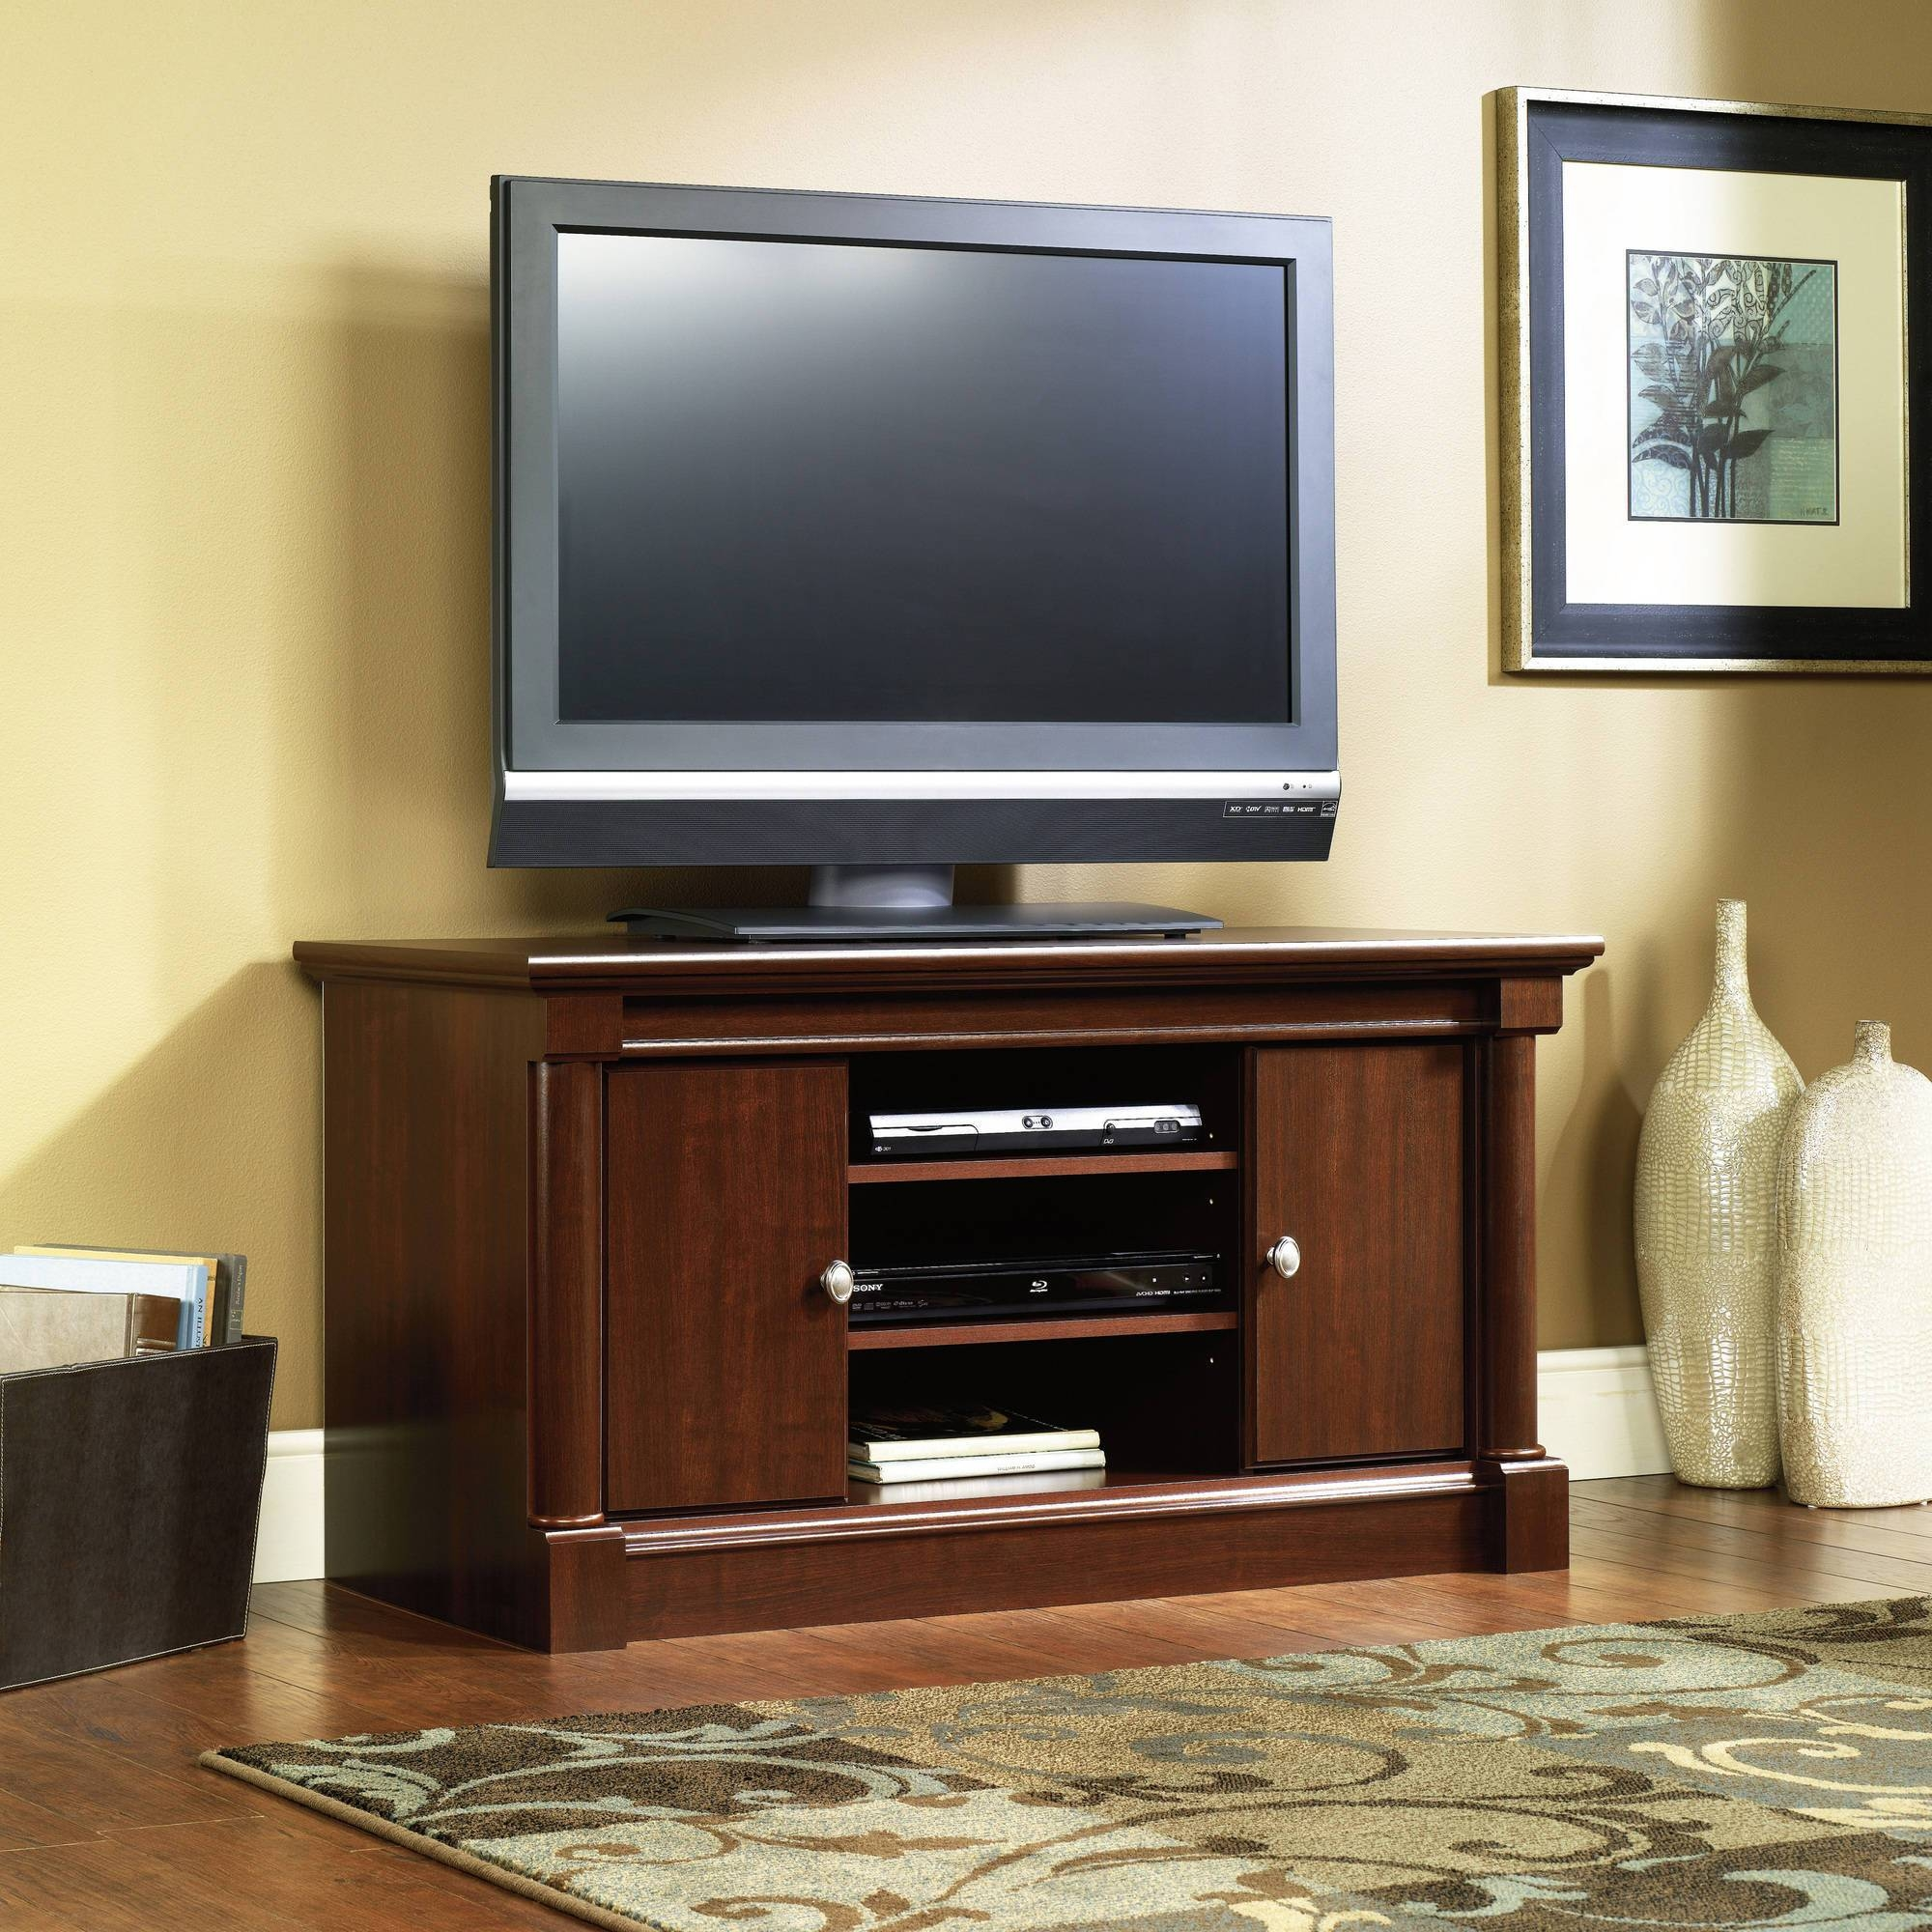 Sauder Palladia Mid Size Tv Stand In Cherry – Walmart Within Como Tv Stands (View 11 of 15)